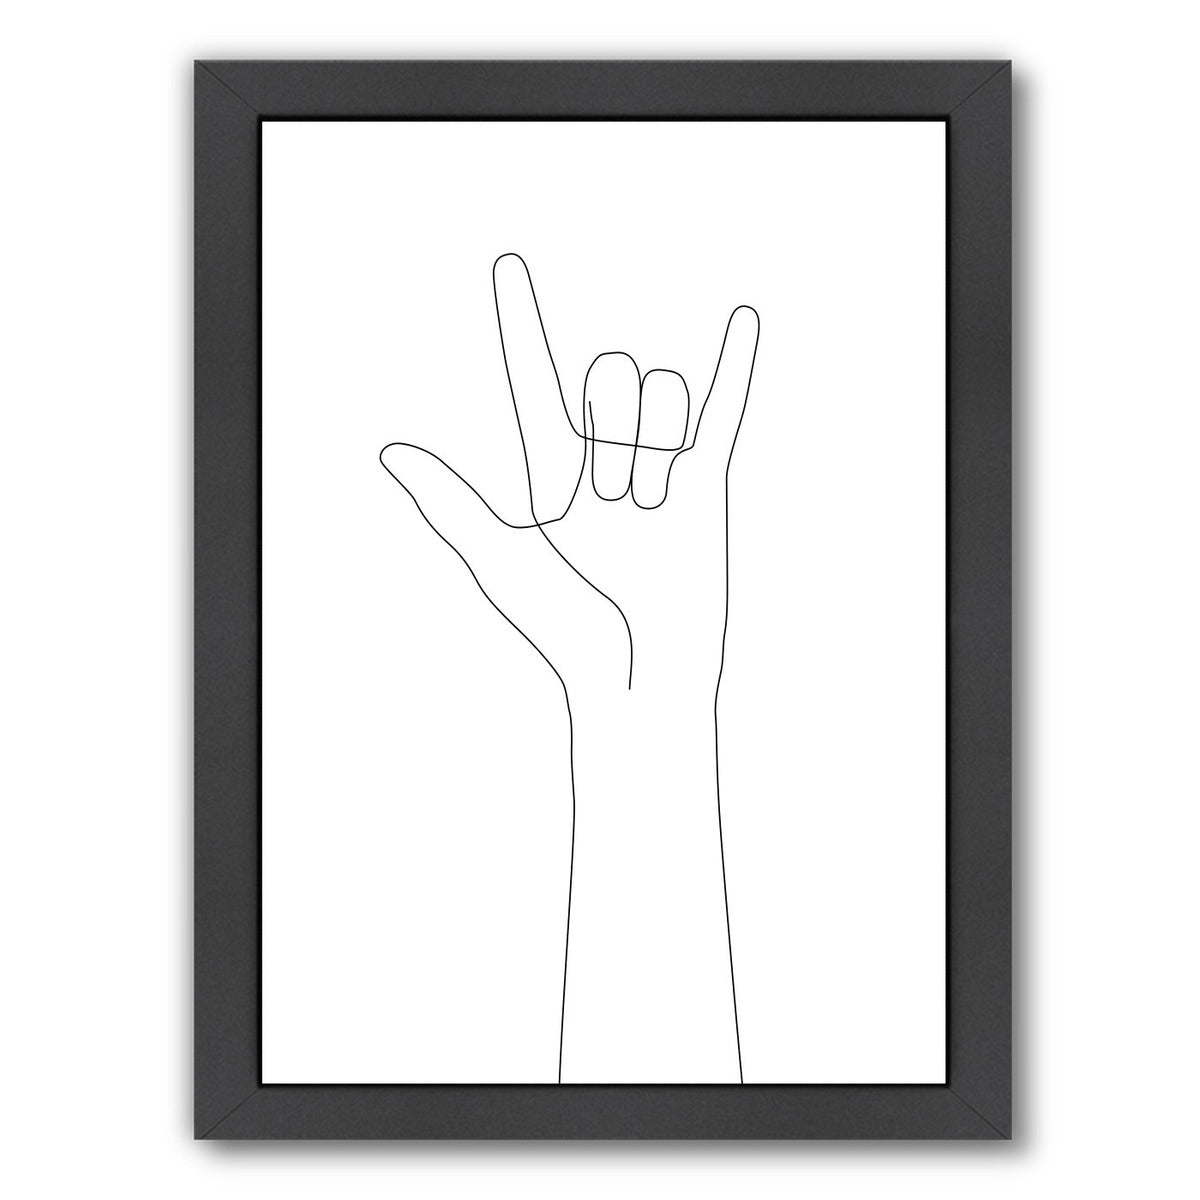 Love Hand Gesture by Explicit Design Framed Print - Americanflat